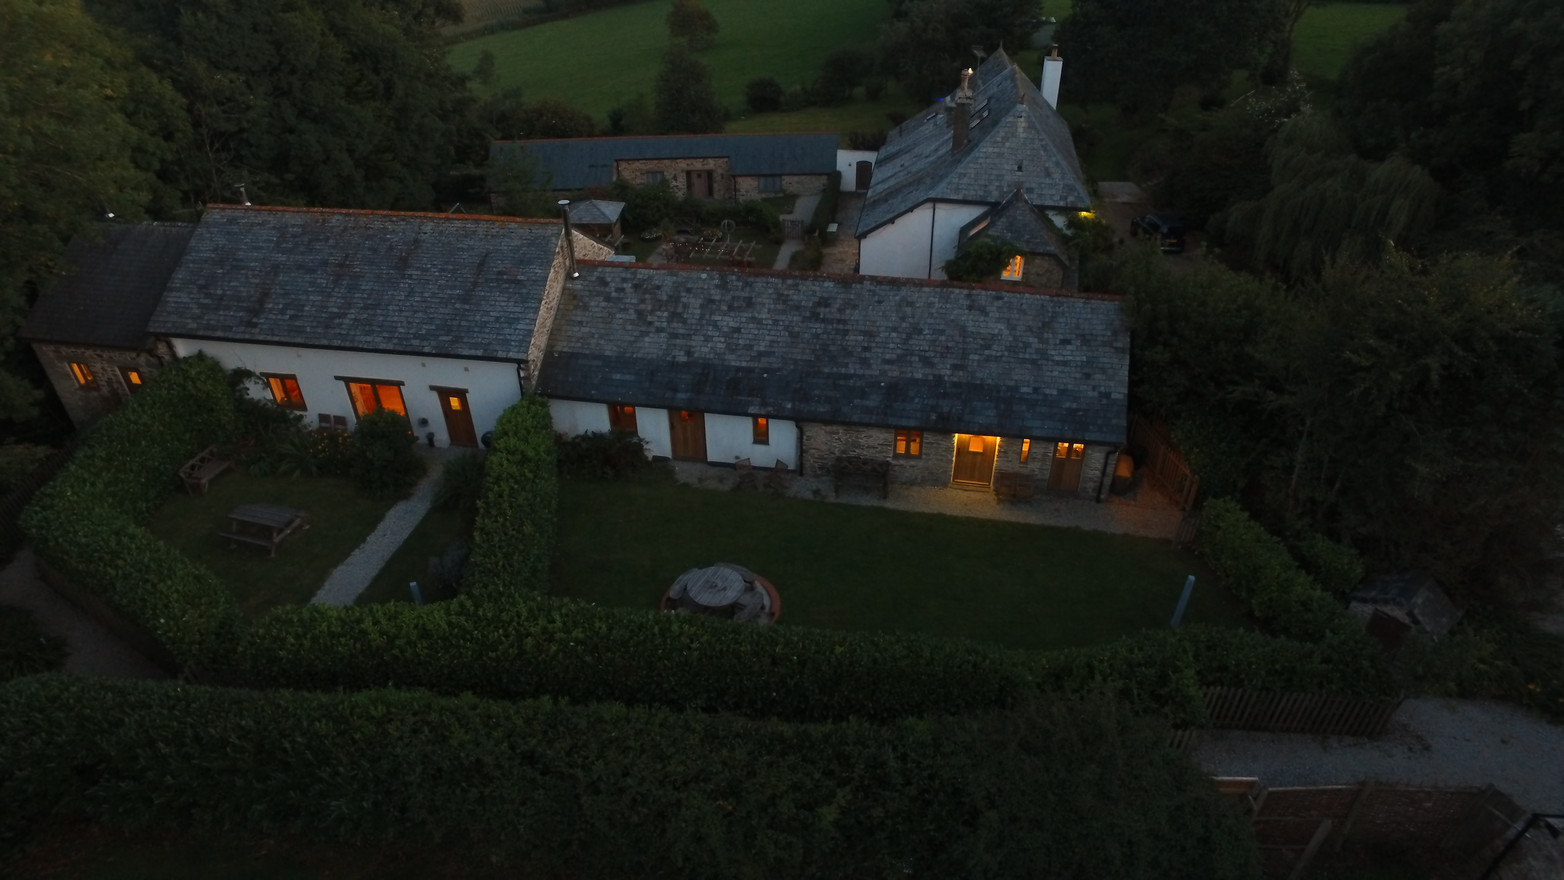 Cosy Cottages at dusk.